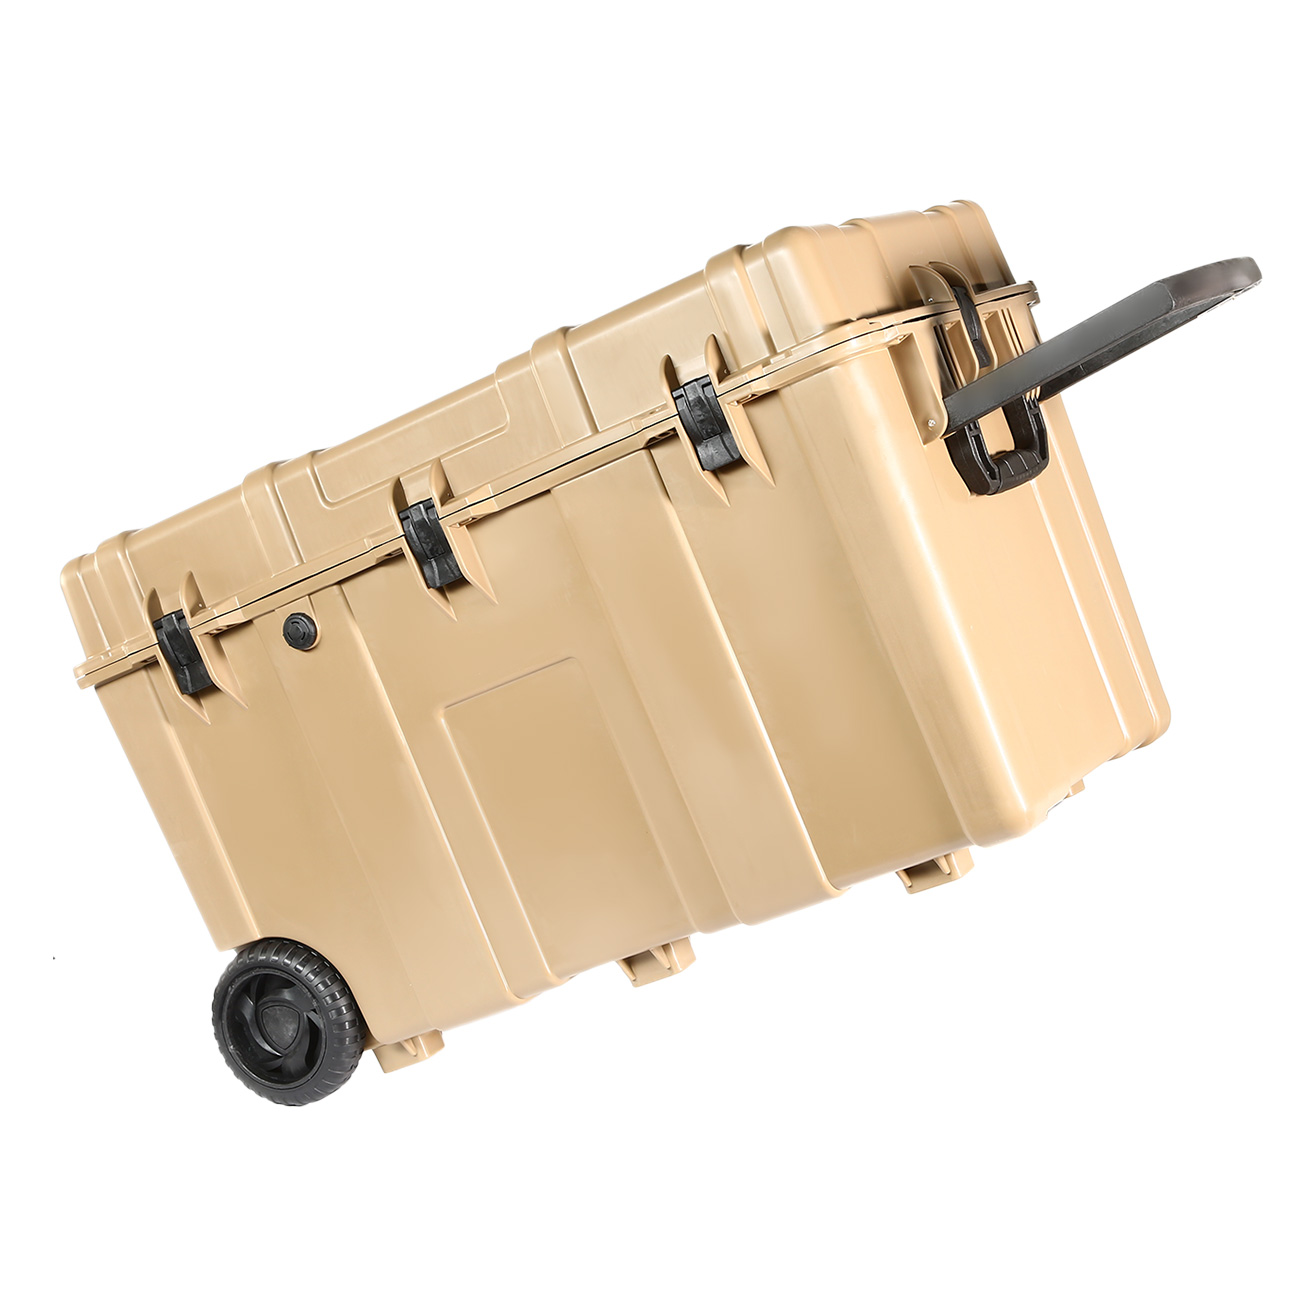 Nuprol Kit Box / Ultimate Hard Case Transport-Trolley 86 x 46 x 53 cm tan 6